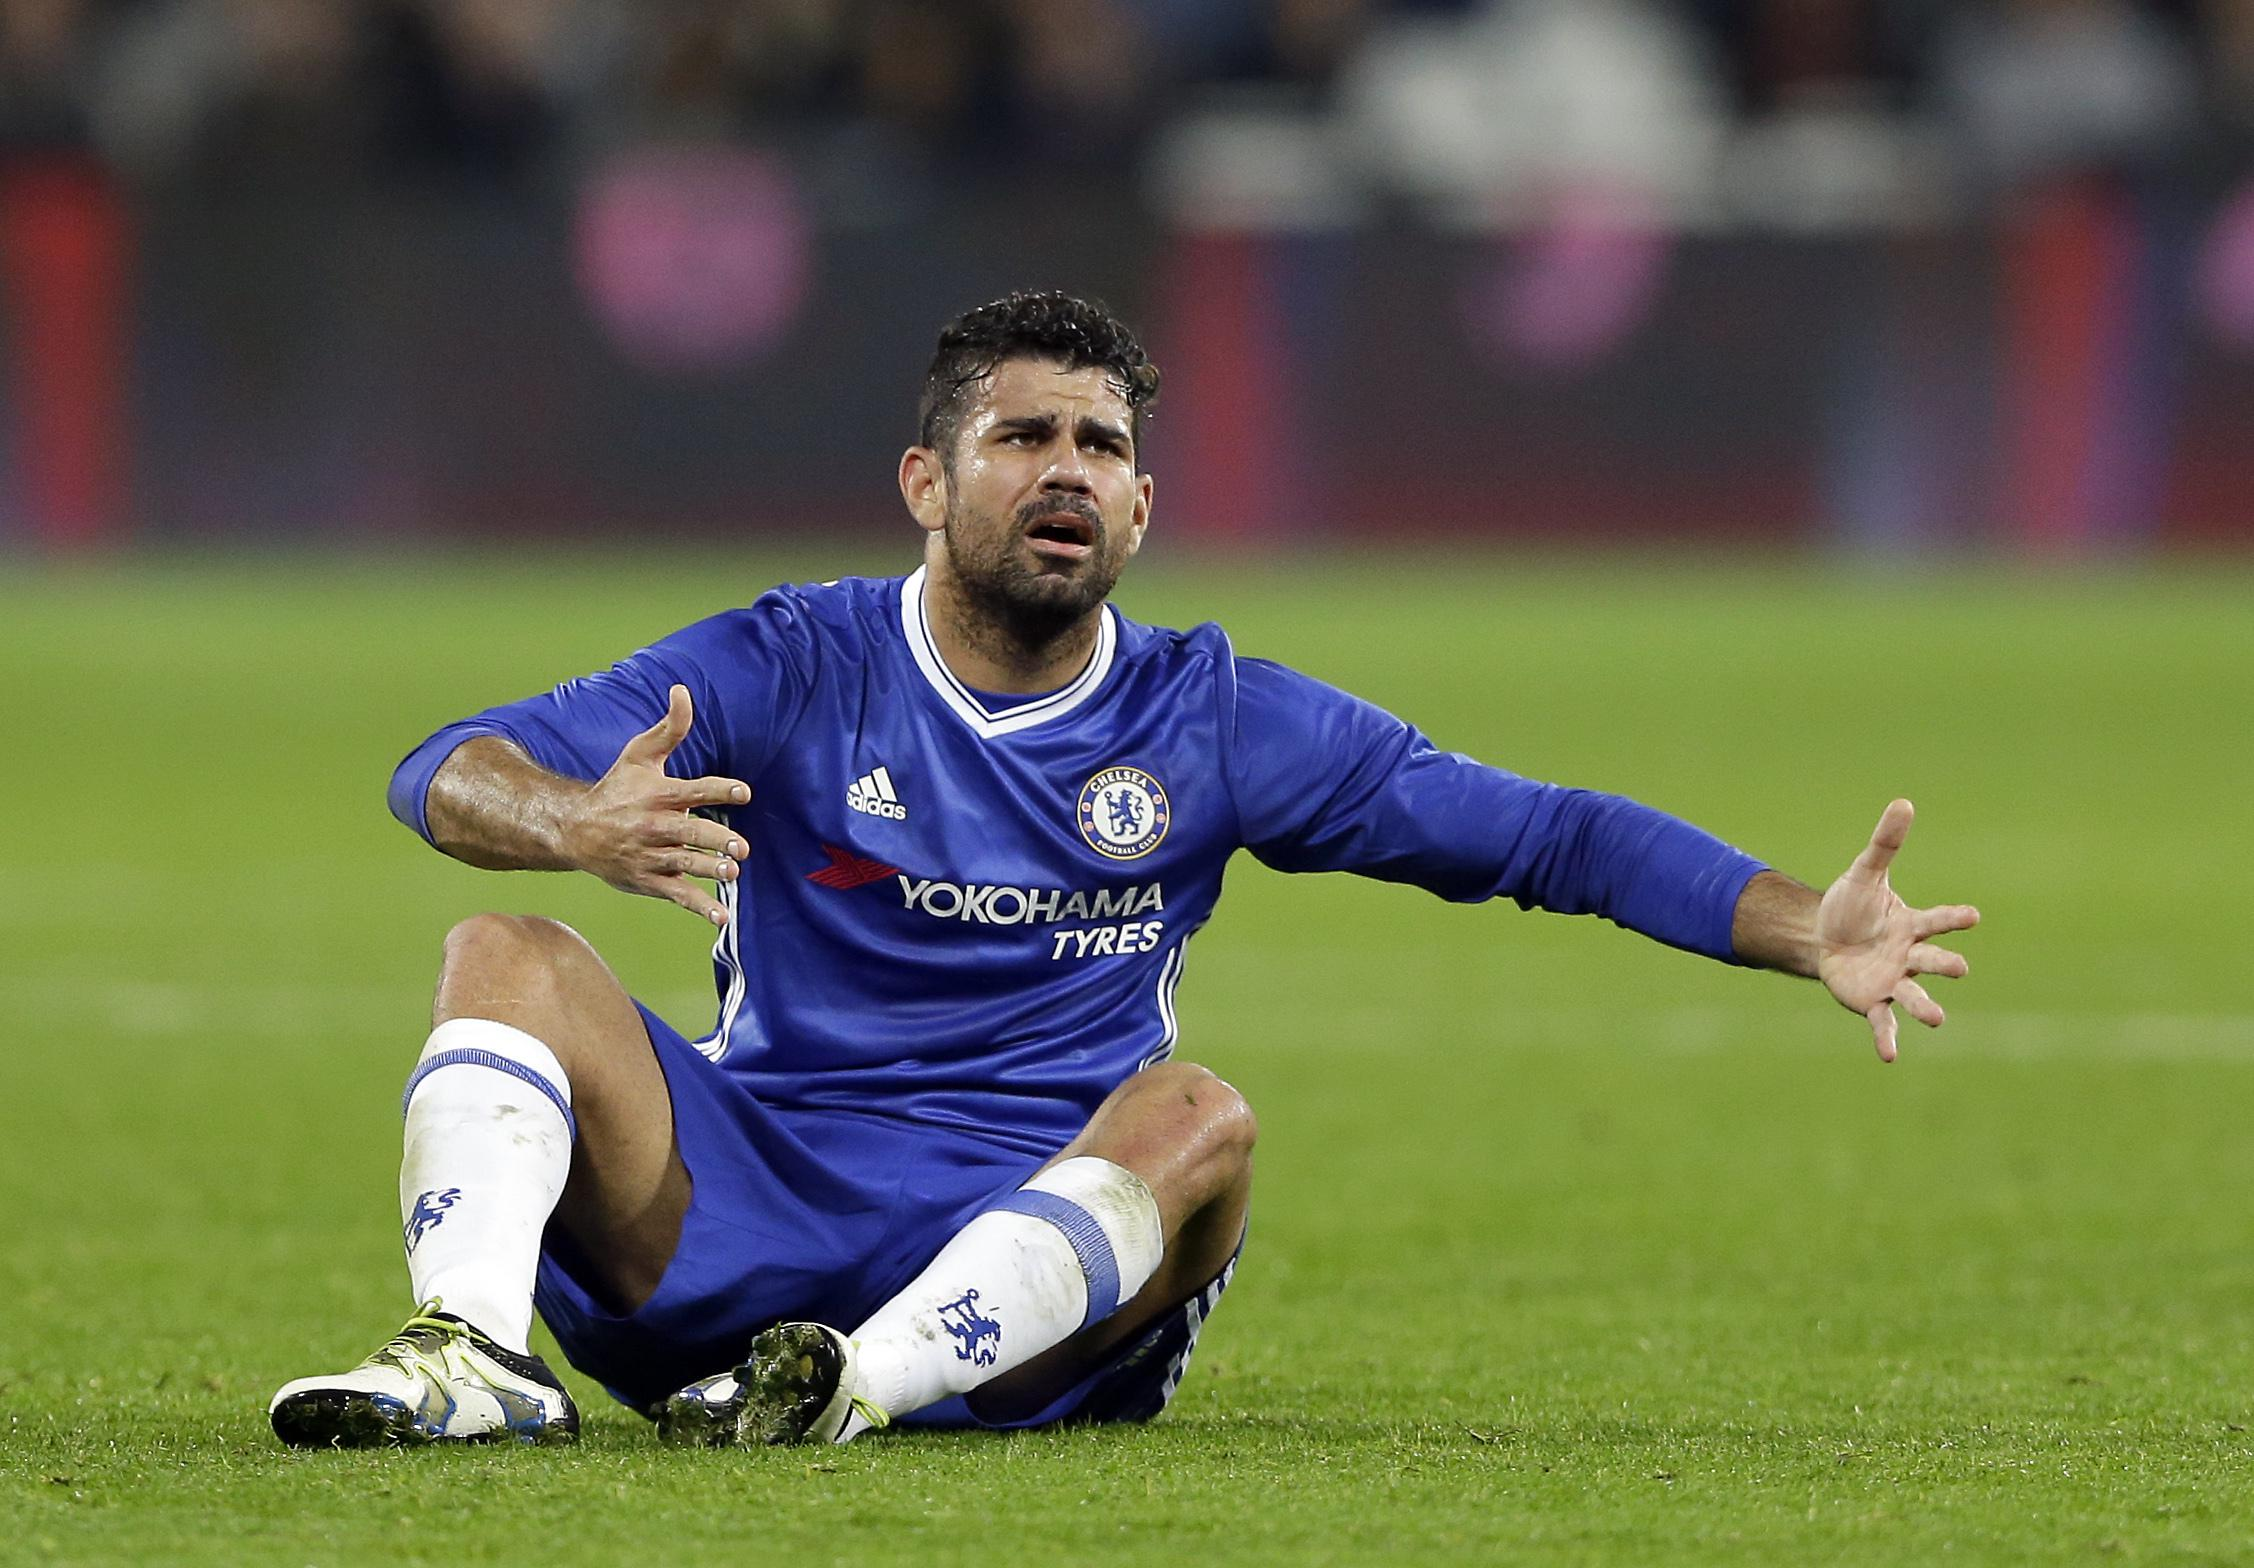 Referees never had a quiet game when Costa was playing